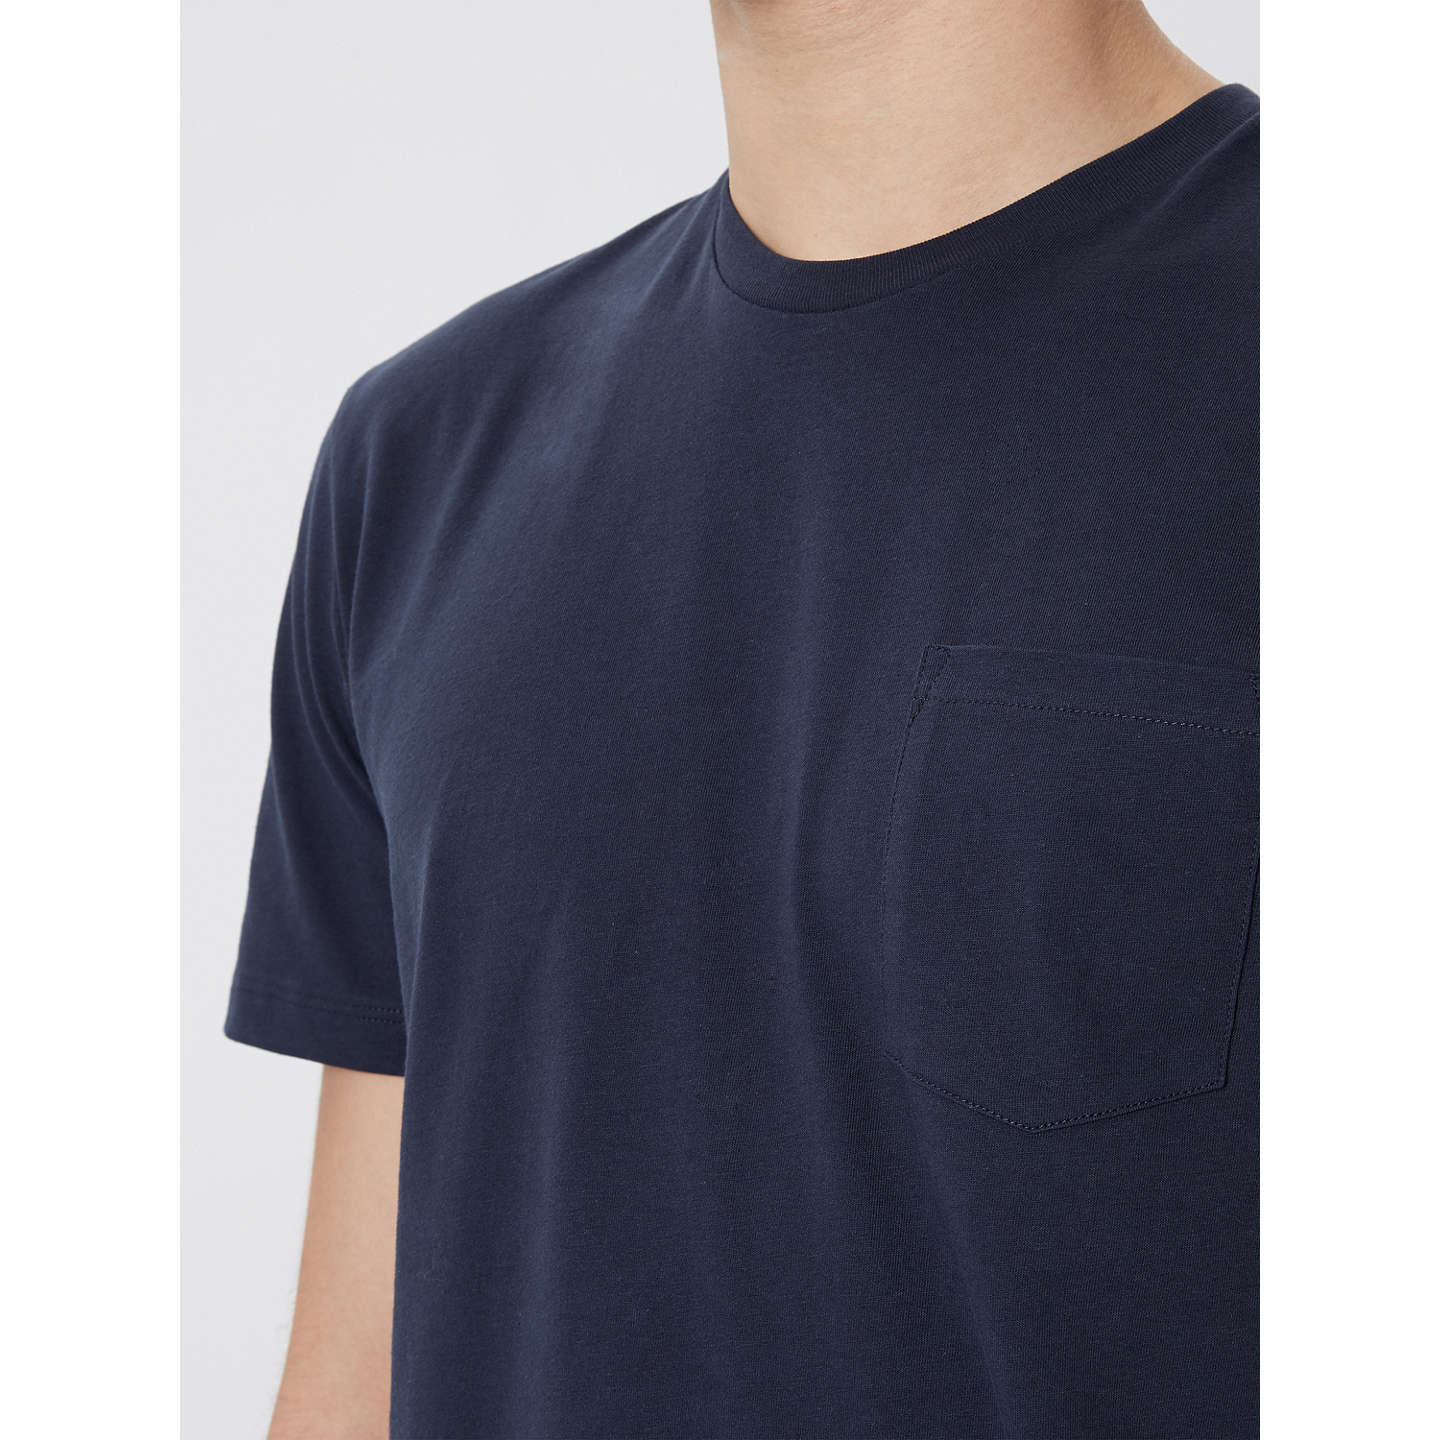 BuyJaeger Organic Cotton T-Shirt, Navy, S Online at johnlewis.com